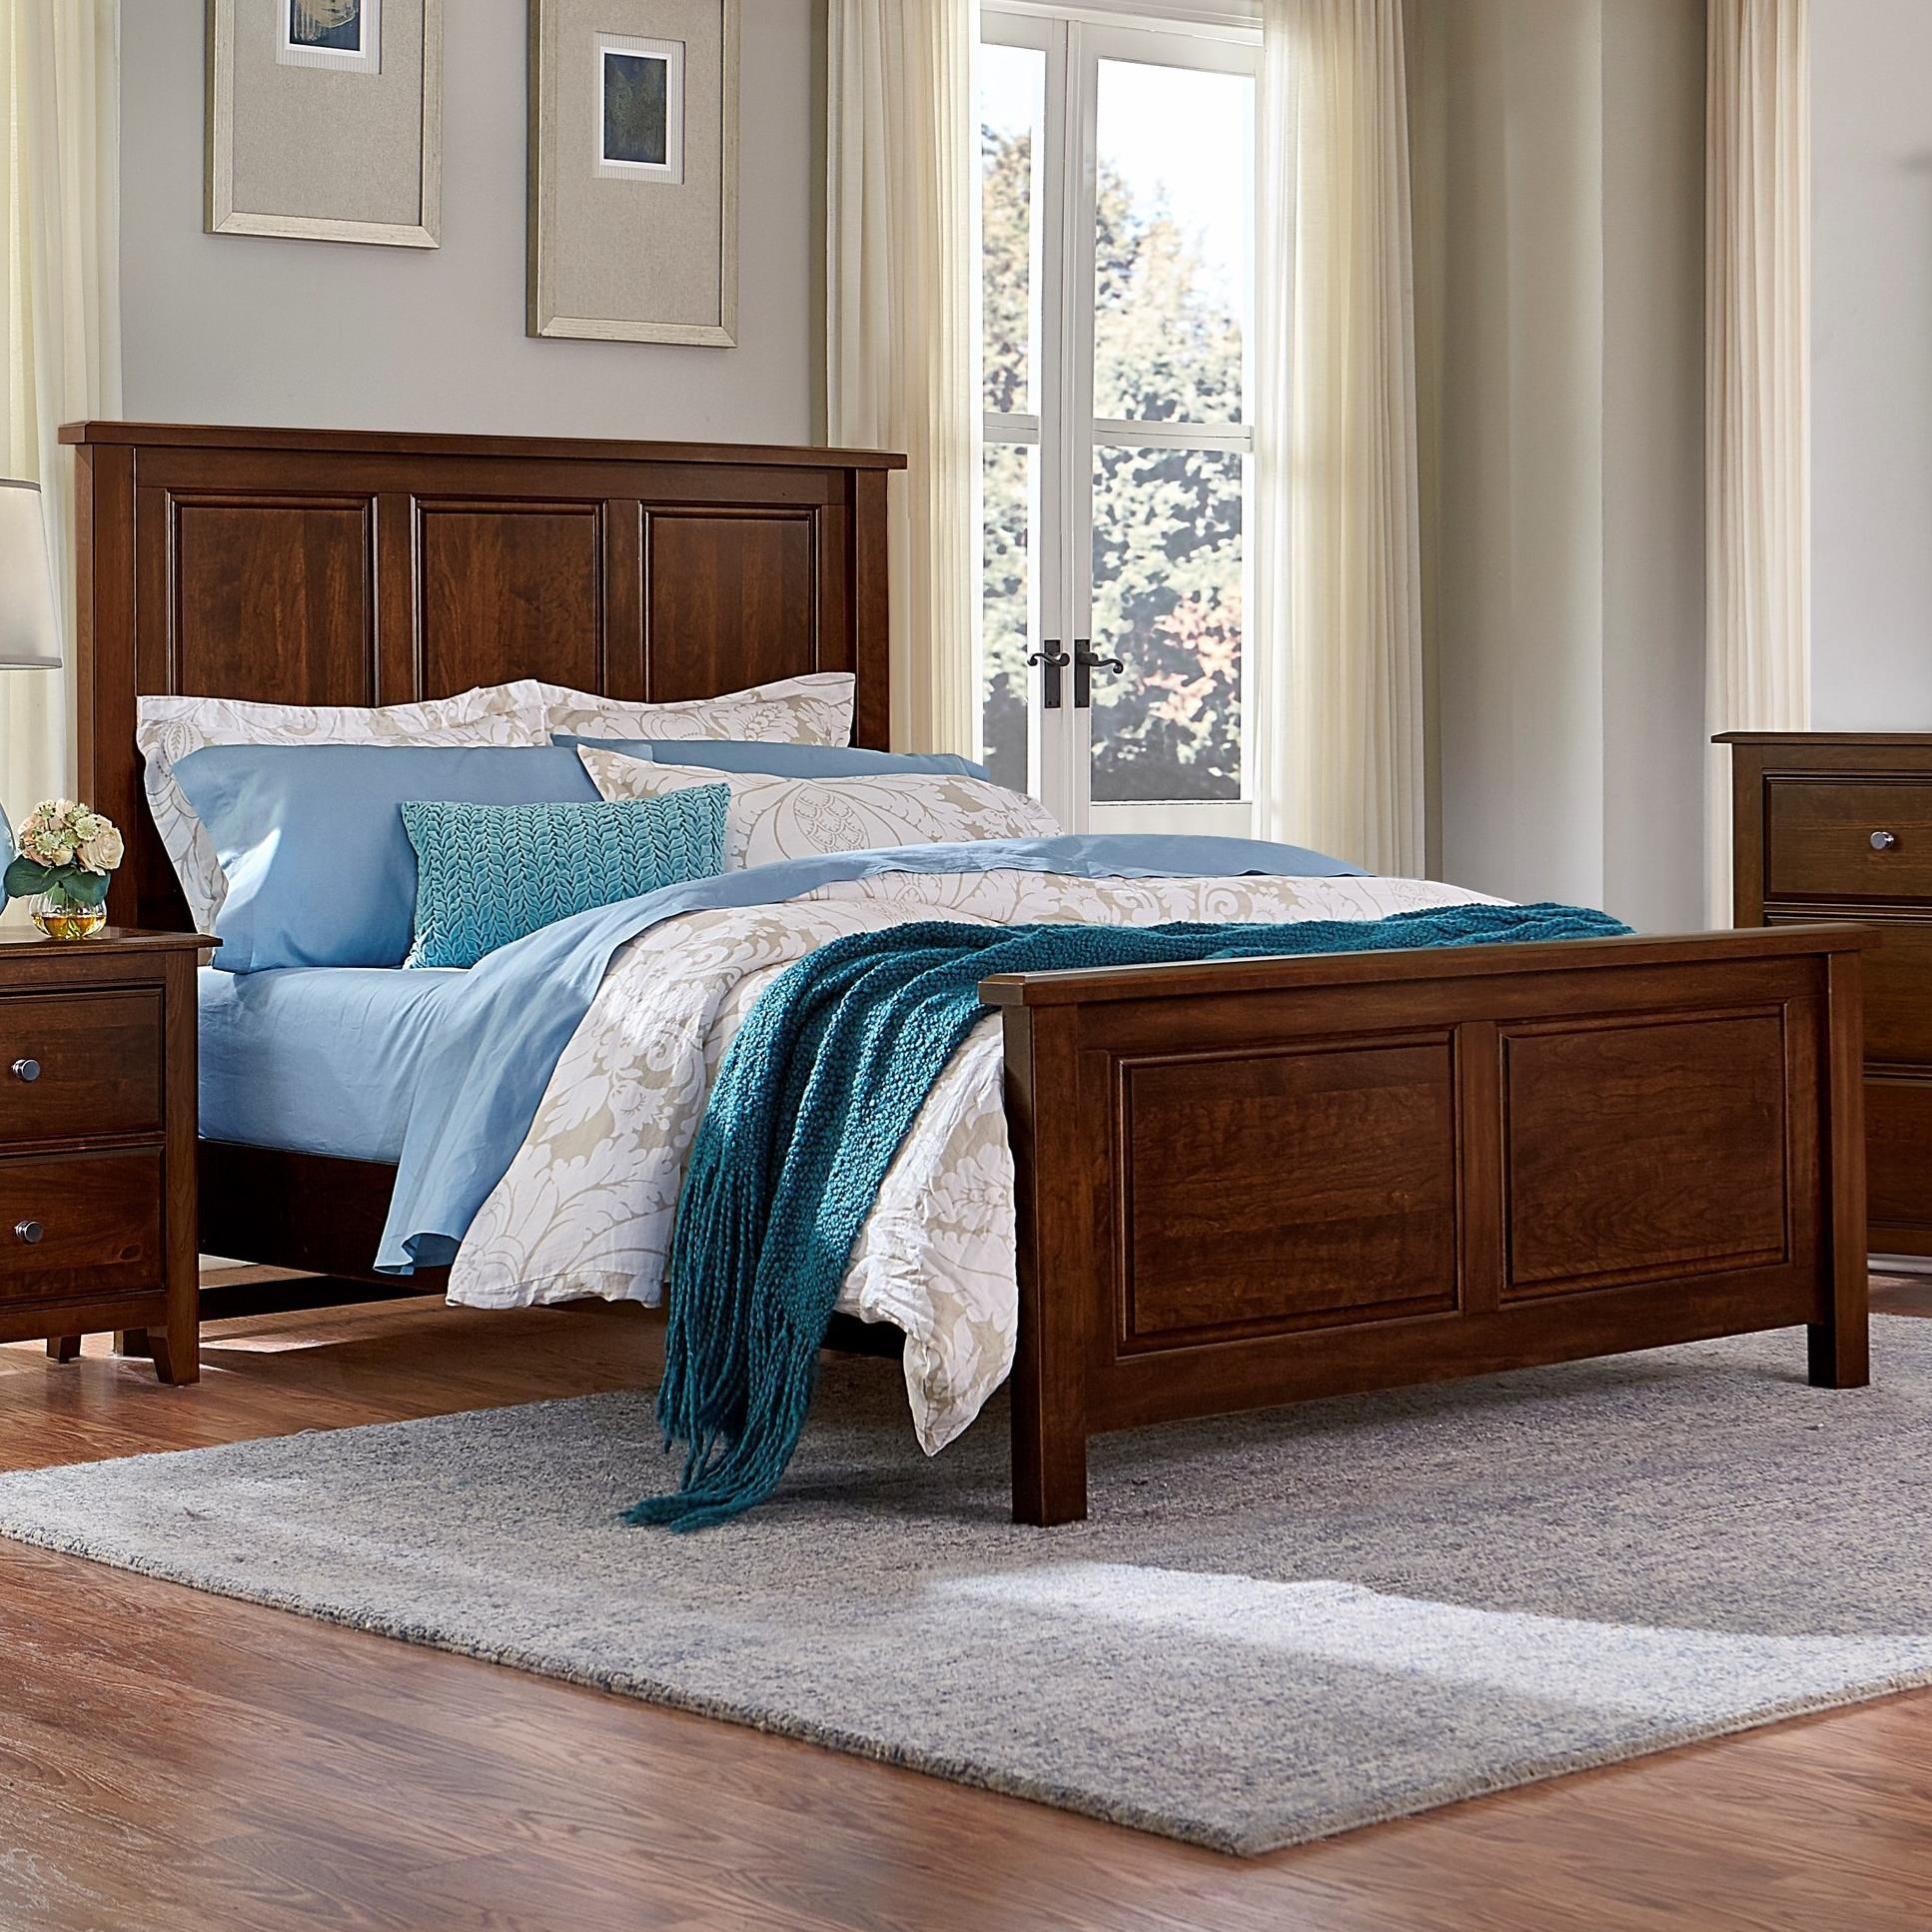 Artisan & Post Artisan Choices Full Panel Bed - Item Number: 104-552+255+911